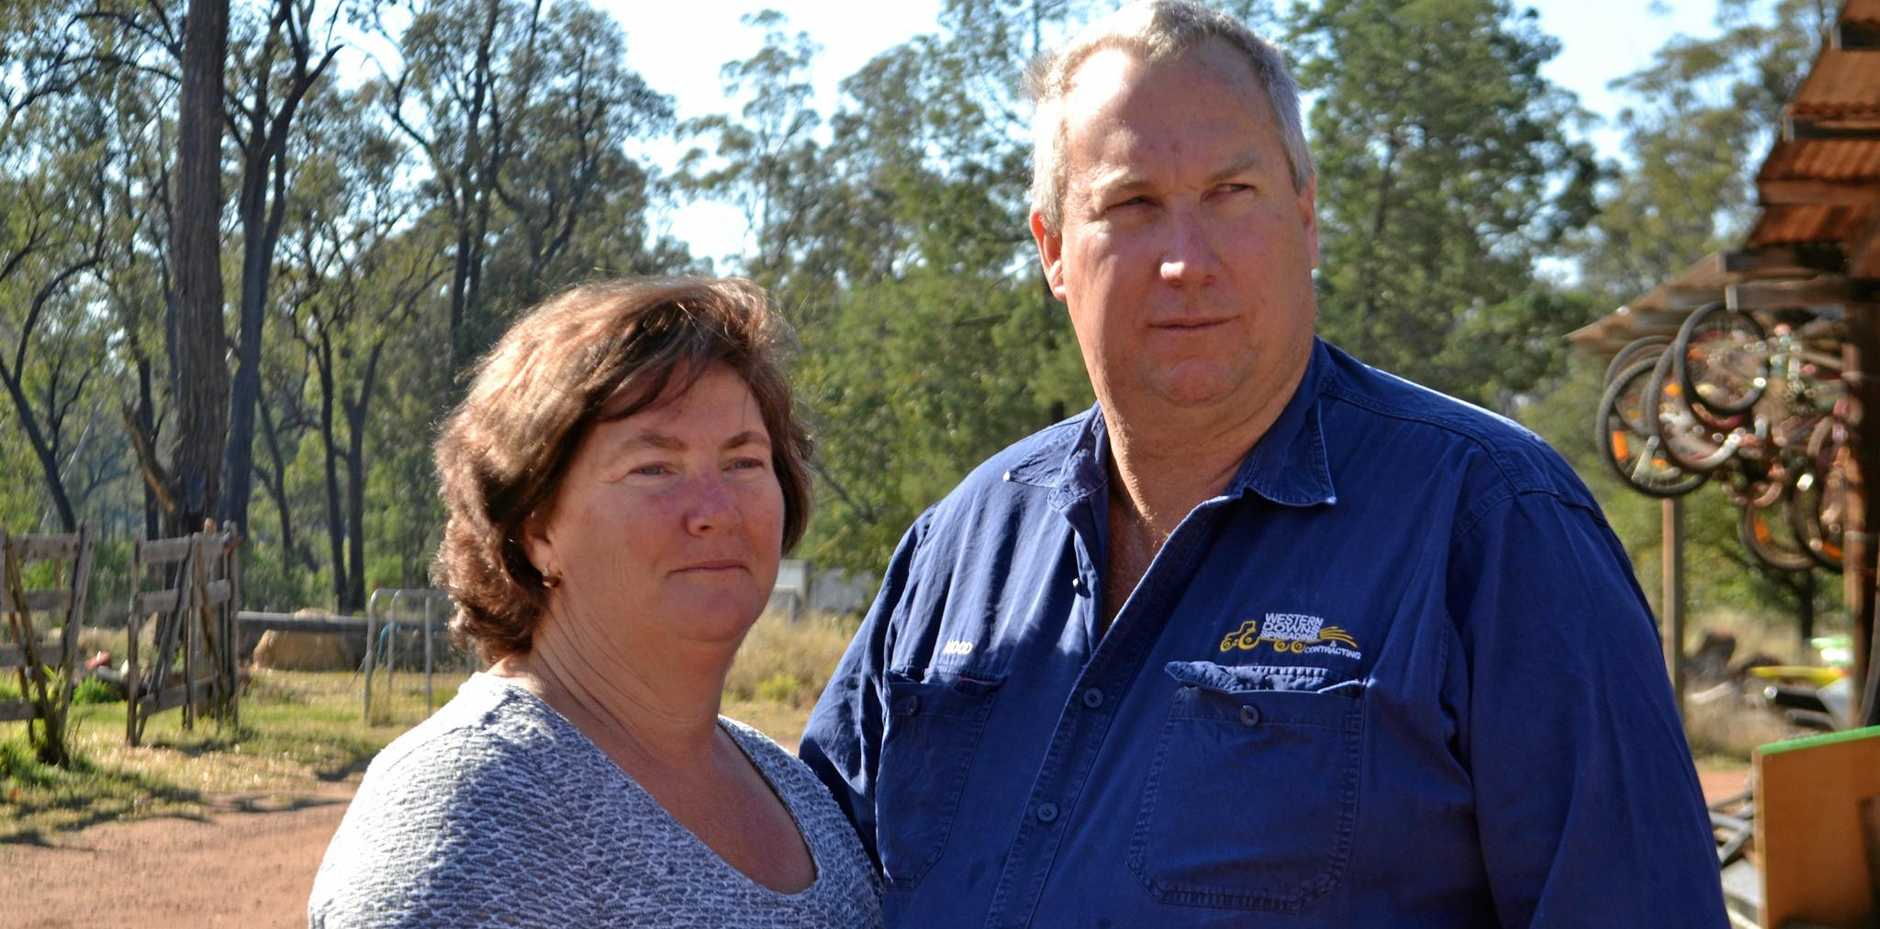 SMALL VICTORY: QGC has been ordered to pay Narelle and Nood Nothdurft additional compensation by the Land Court.